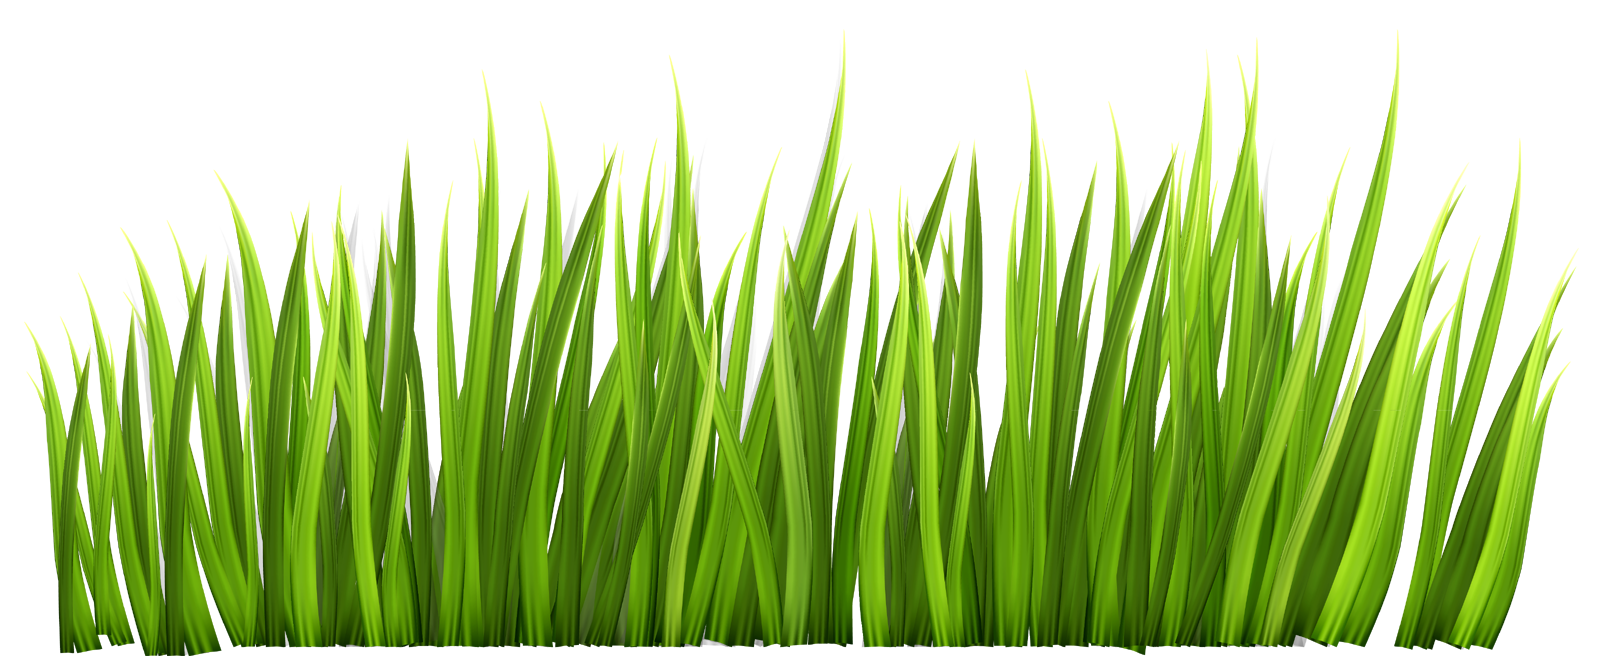 grass background clipart - photo #21